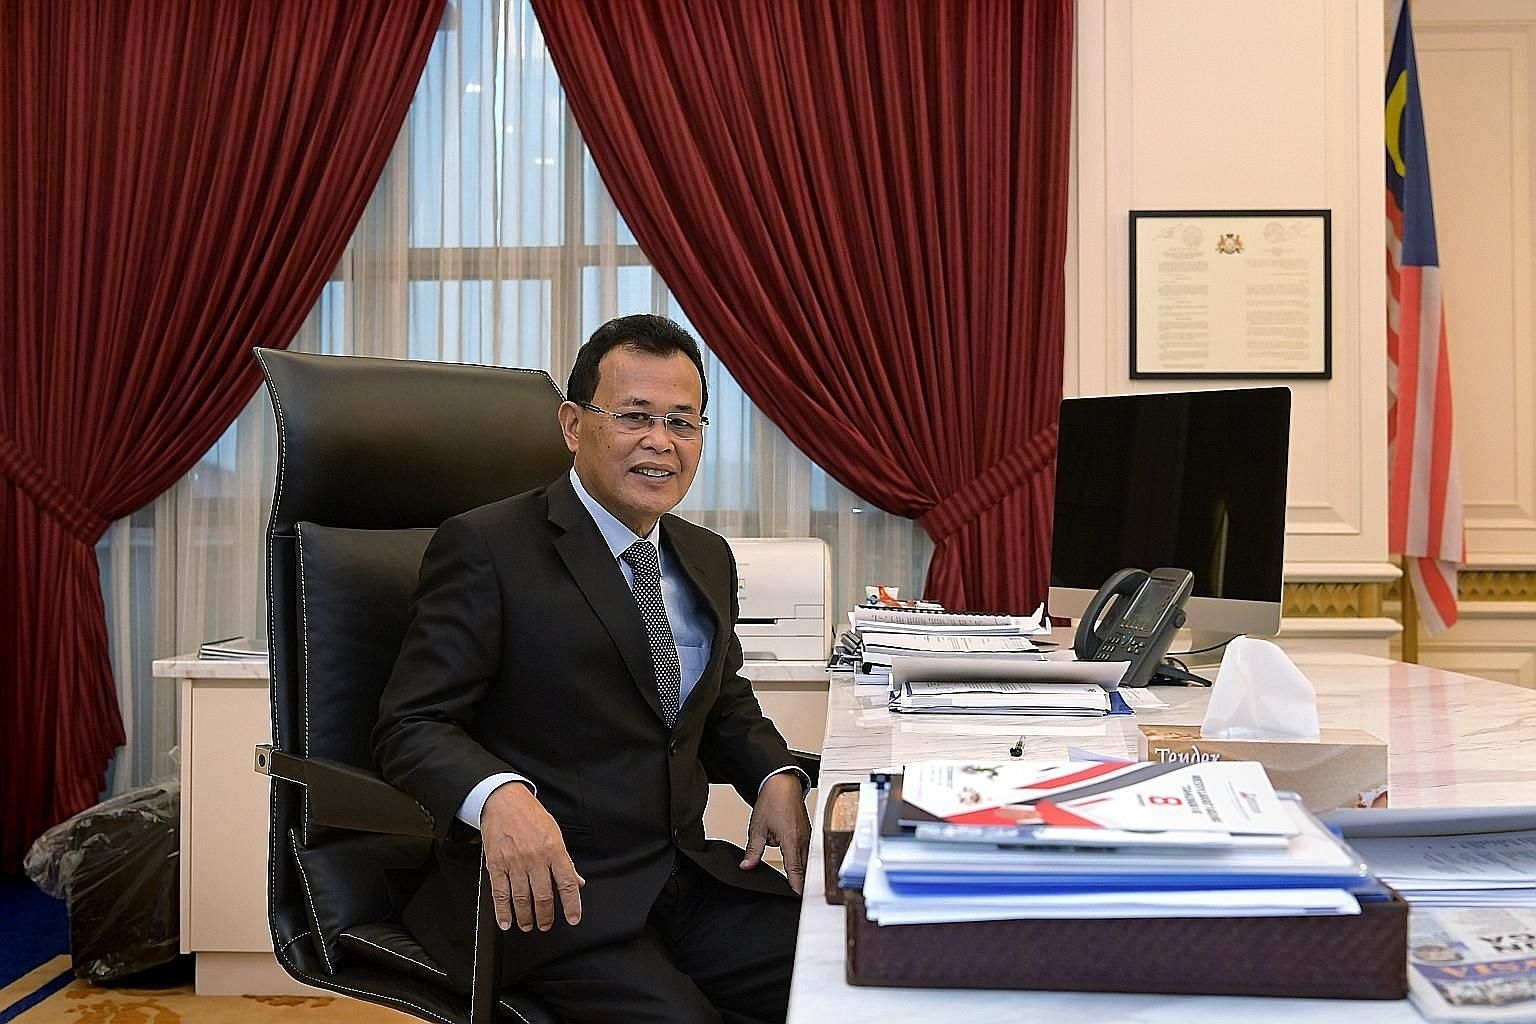 Johor Menteri Besar Osman Sapian says reducing the congestion at the Causeway and Second Link is top on his list as the state's new caretaker.